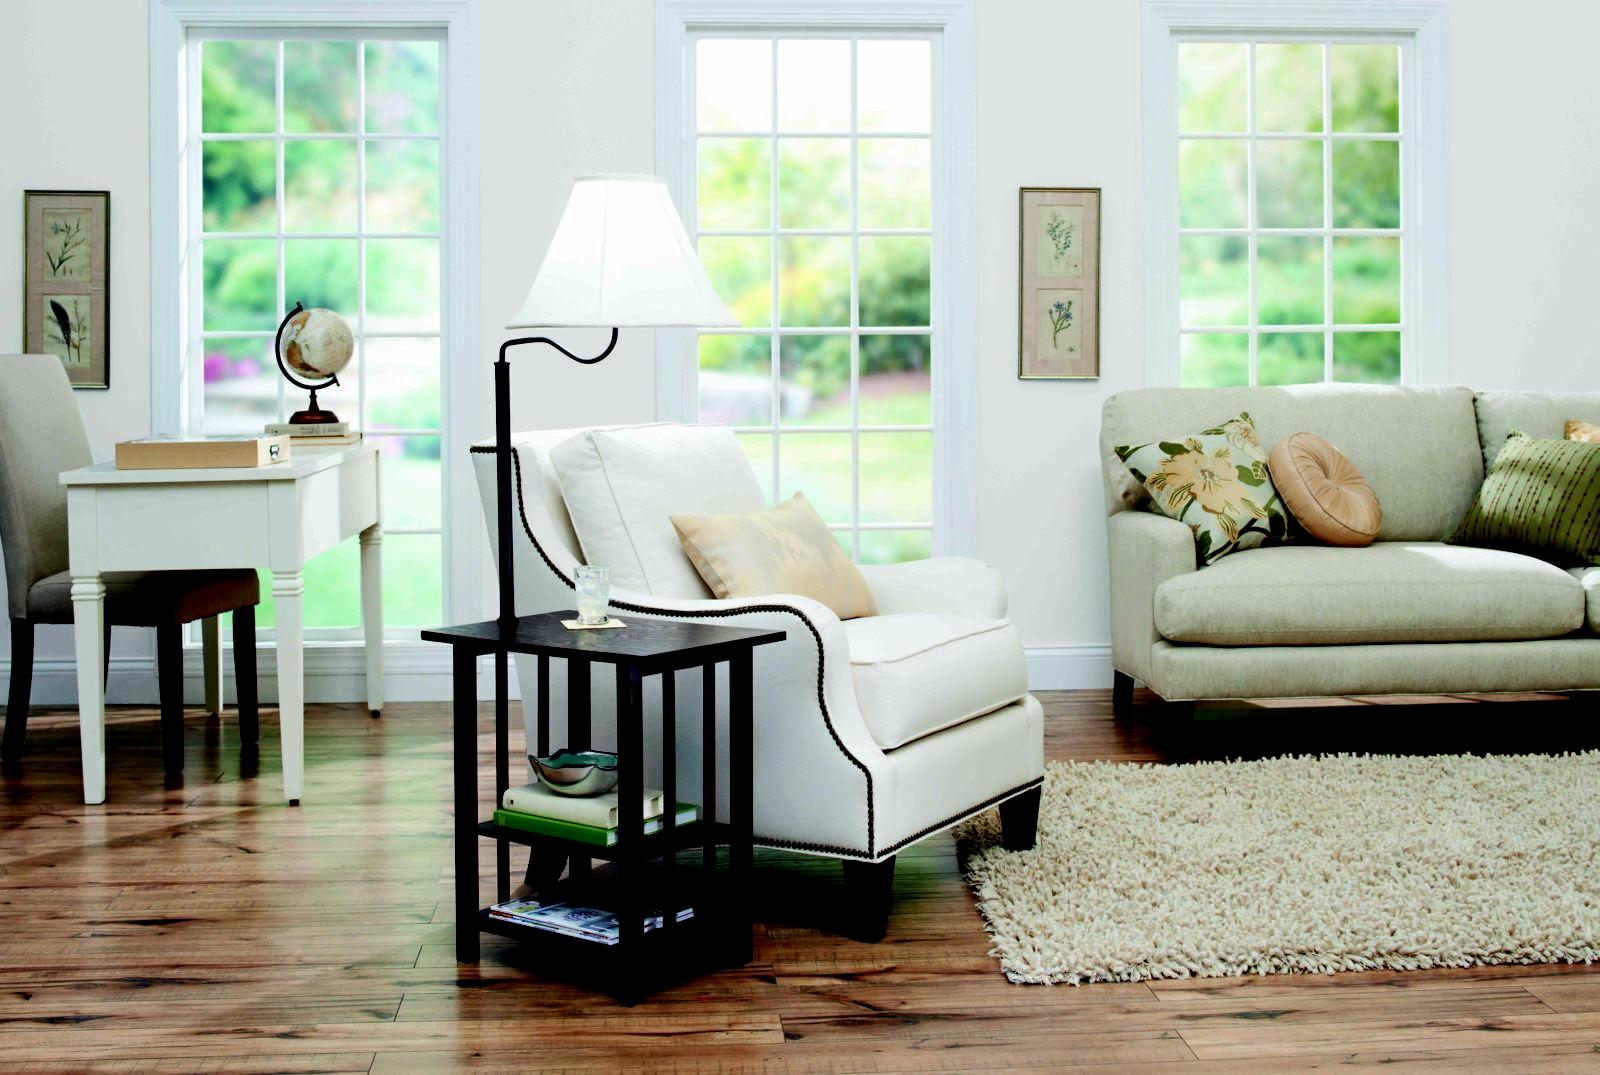 3-Rack End Table Lamp Espresso Decor And Gardens